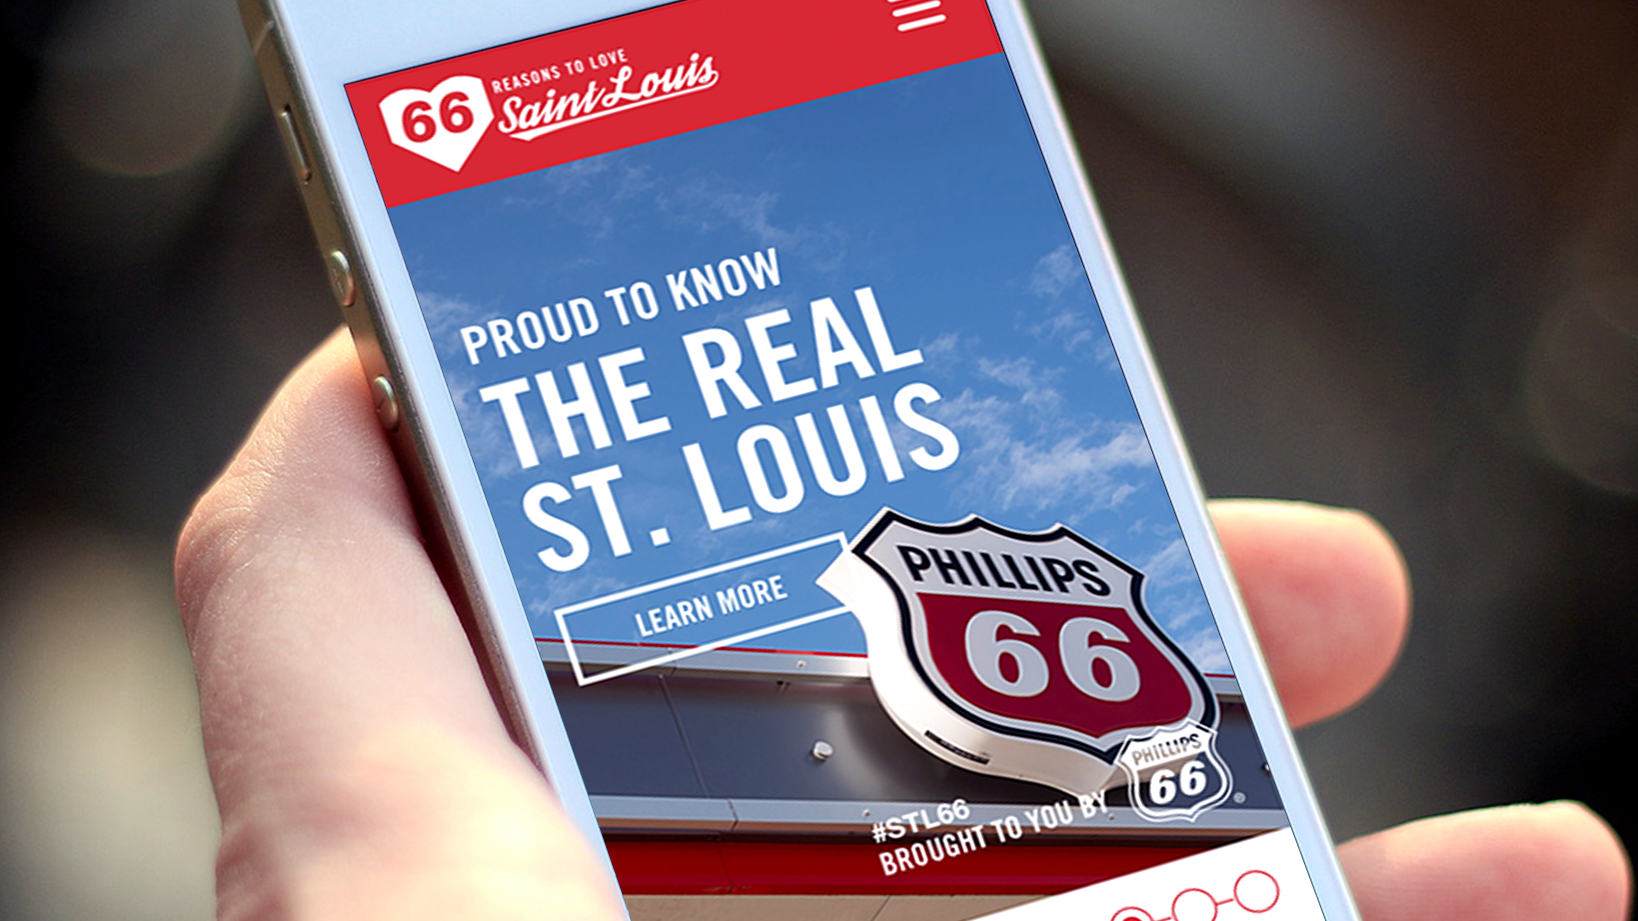 Phillips 66 content development, website and mobile design